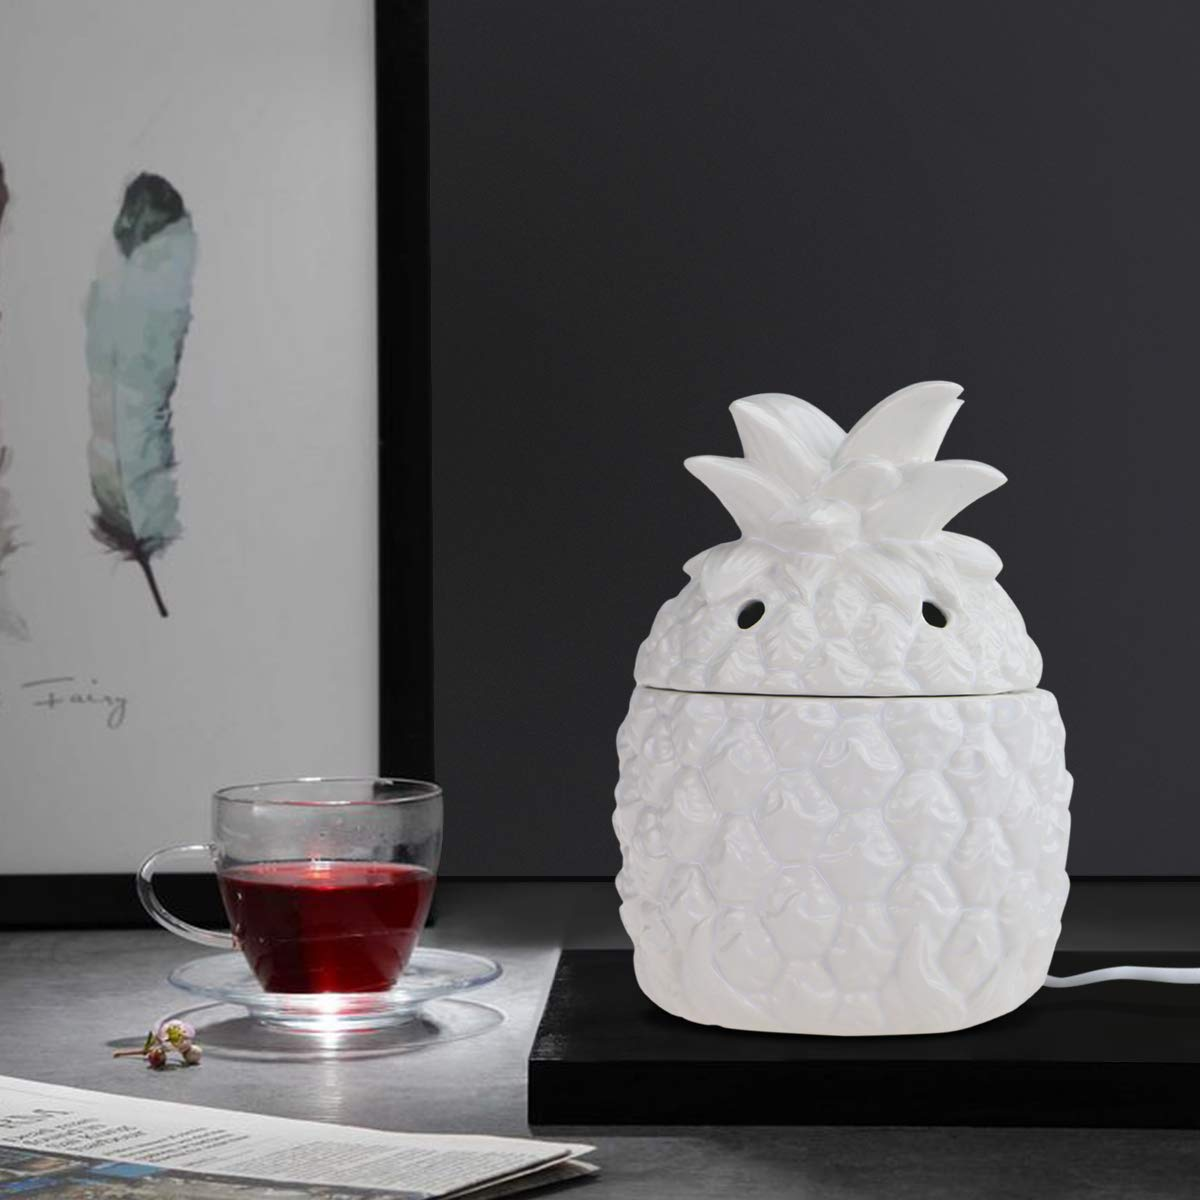 STAR MOON Pluggable Ceramic 3D Form Fragrance Warmer Wax Melter for Home/Dorm/Office No Flame No Smoke No Soot - Embossment Pineapple Pattern by STAR MOON (Image #7)